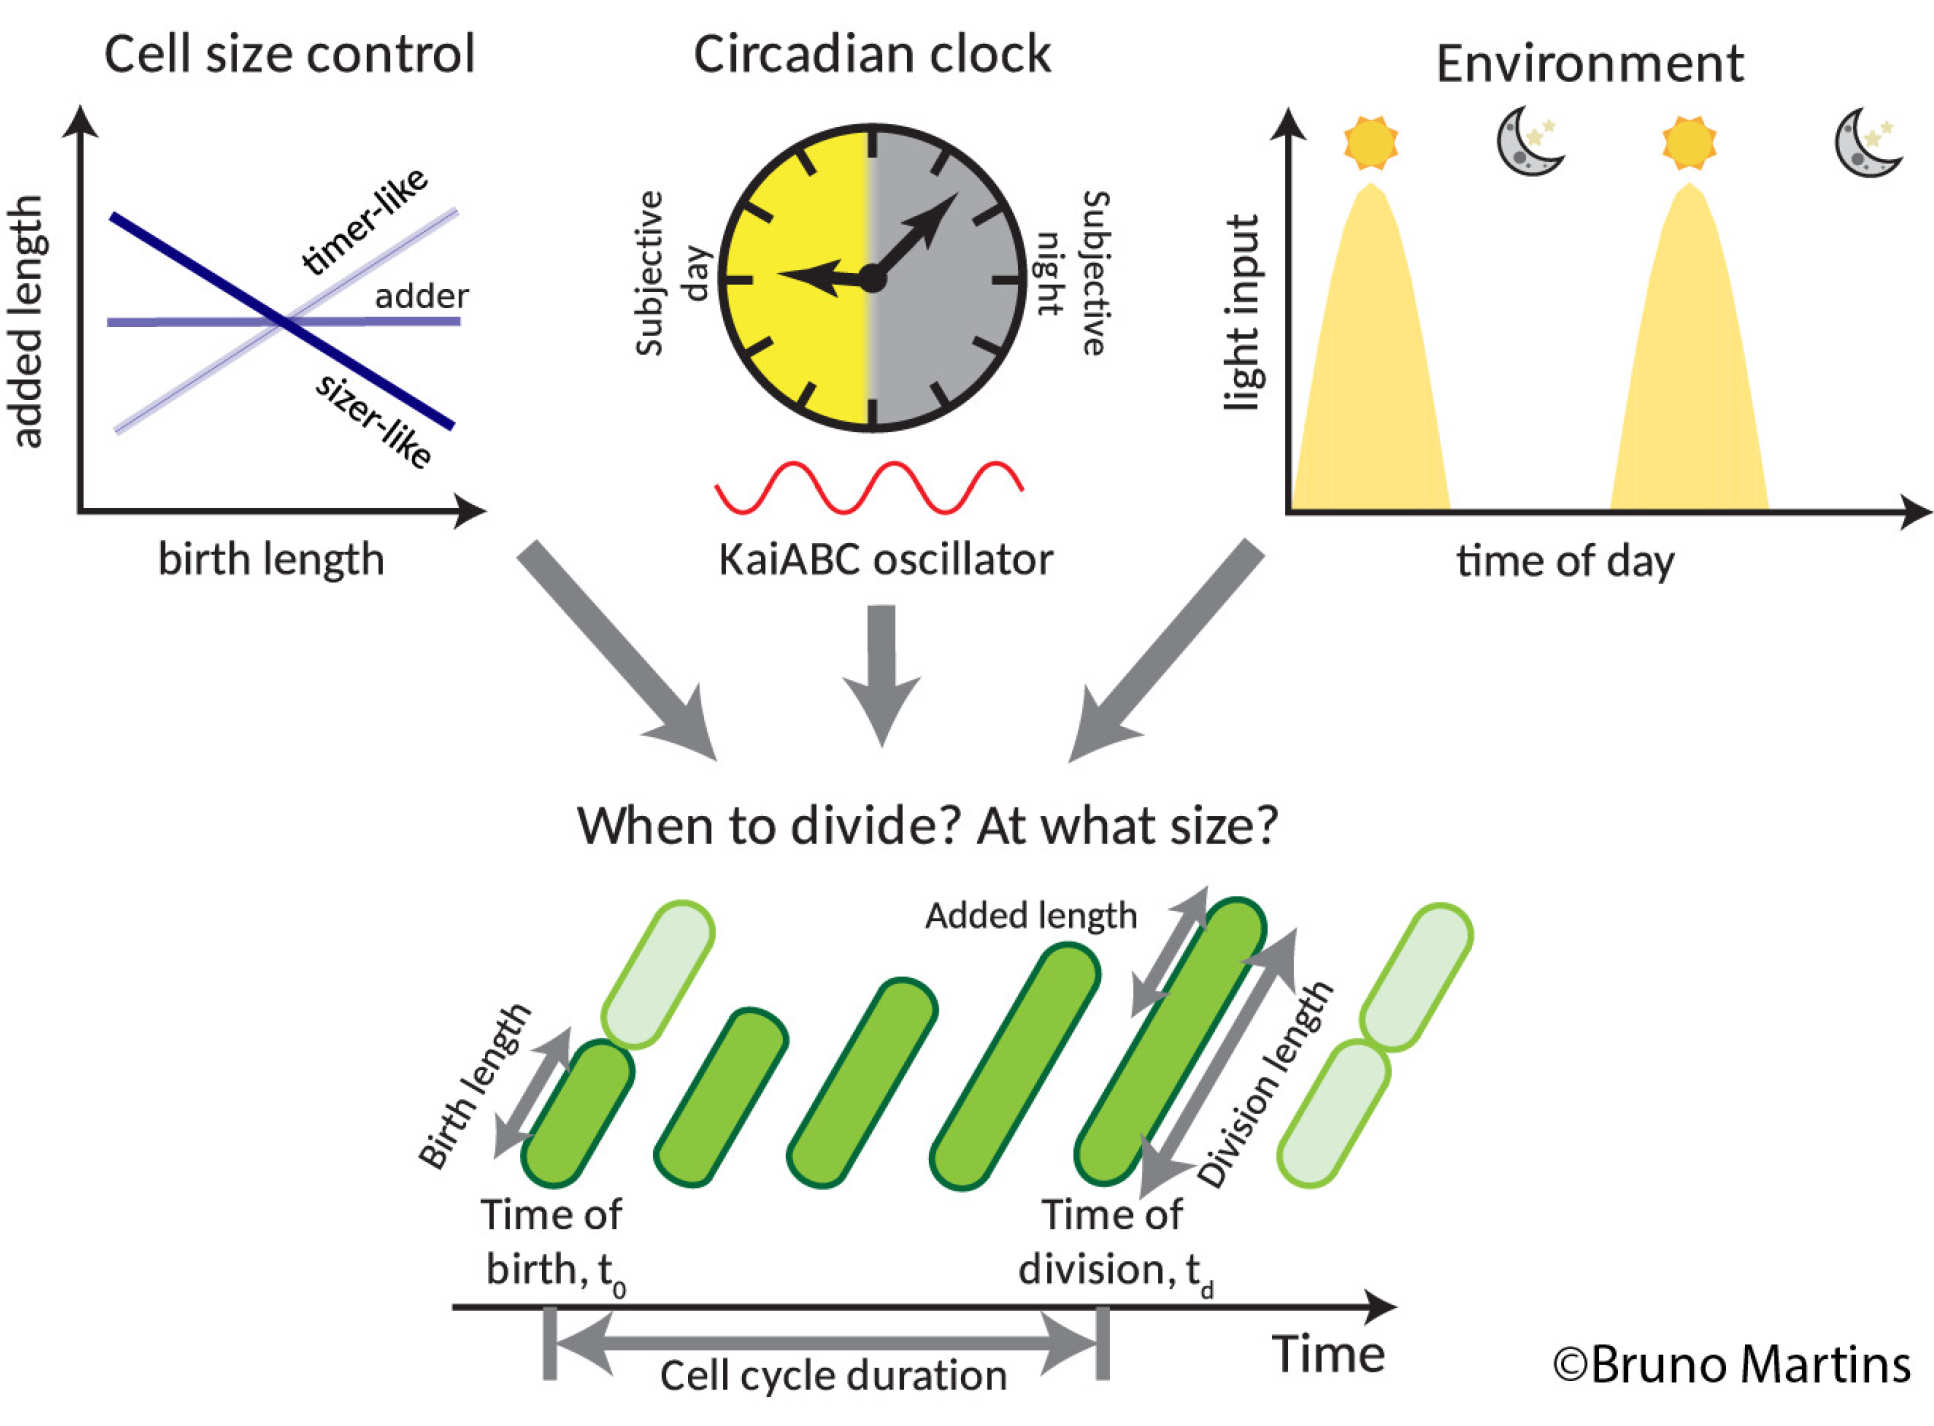 A graph of cell size, an image of a clock with day/night portion, and a graph of daylight and nighttime across 24 hours, all feeding into a graph showing different lengths of cells dividing at different times of the day